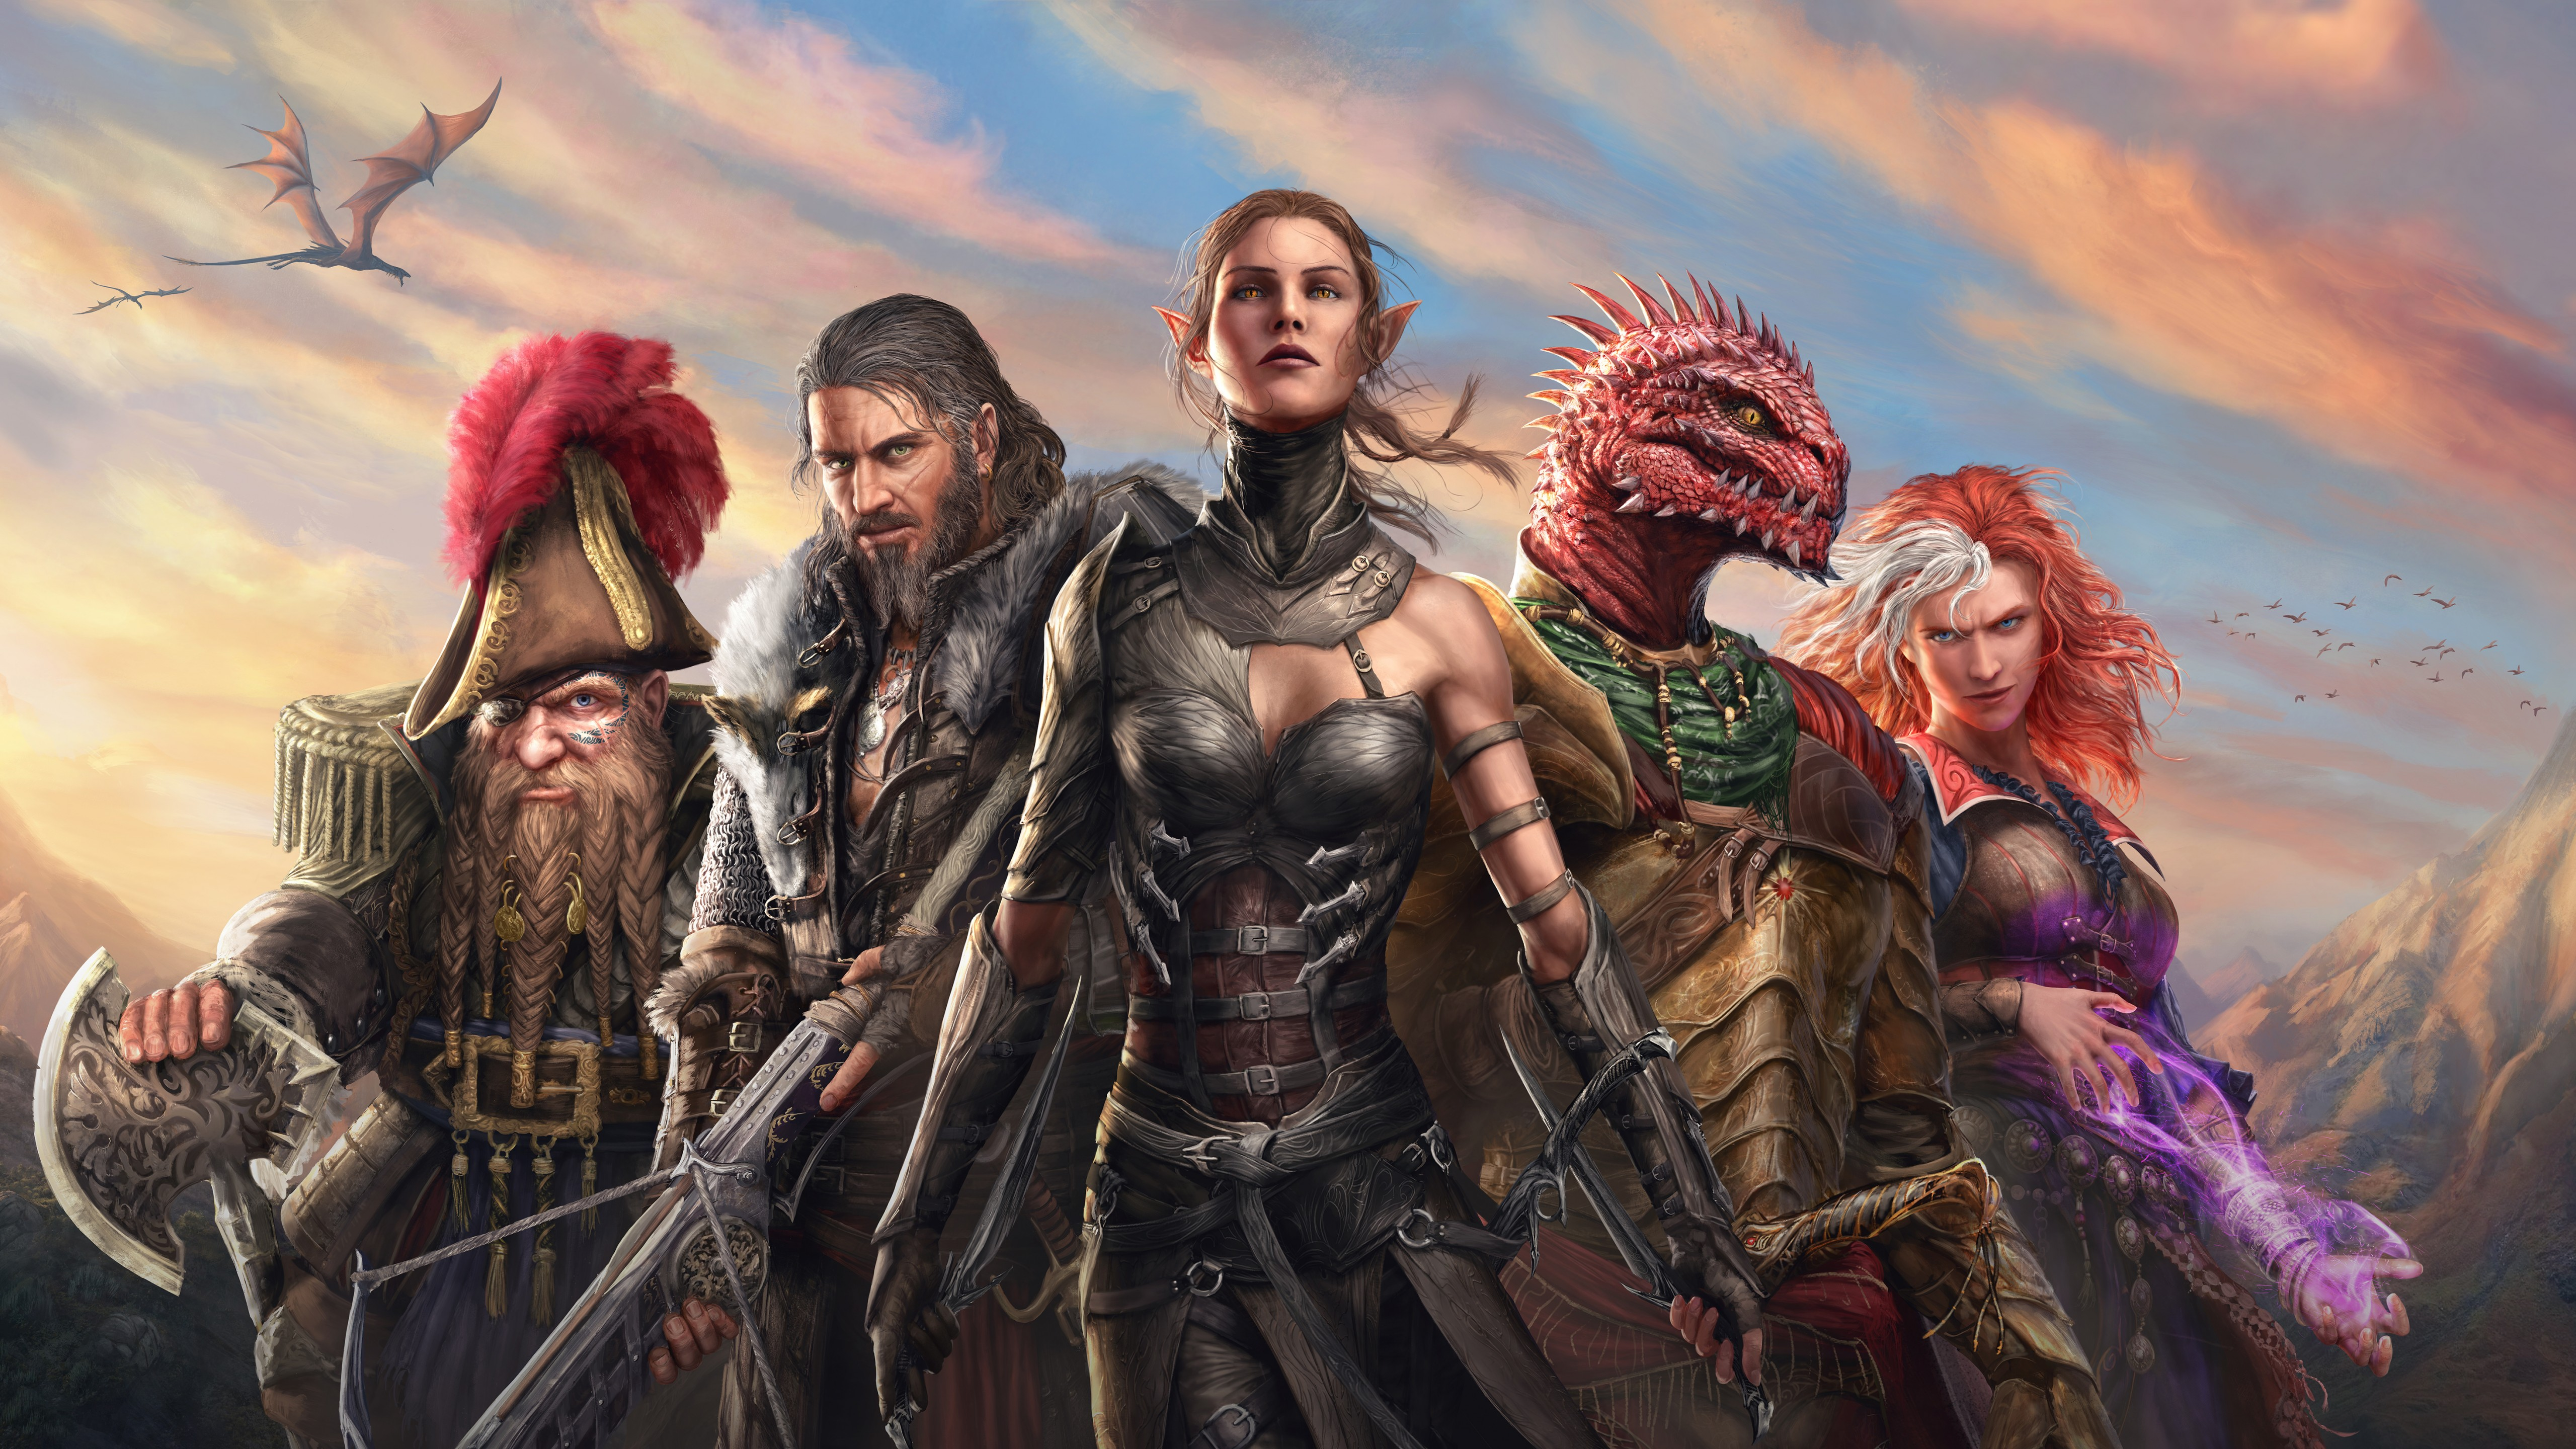 Divinity: Original Sin 2 for Nintendo Switch supports cross